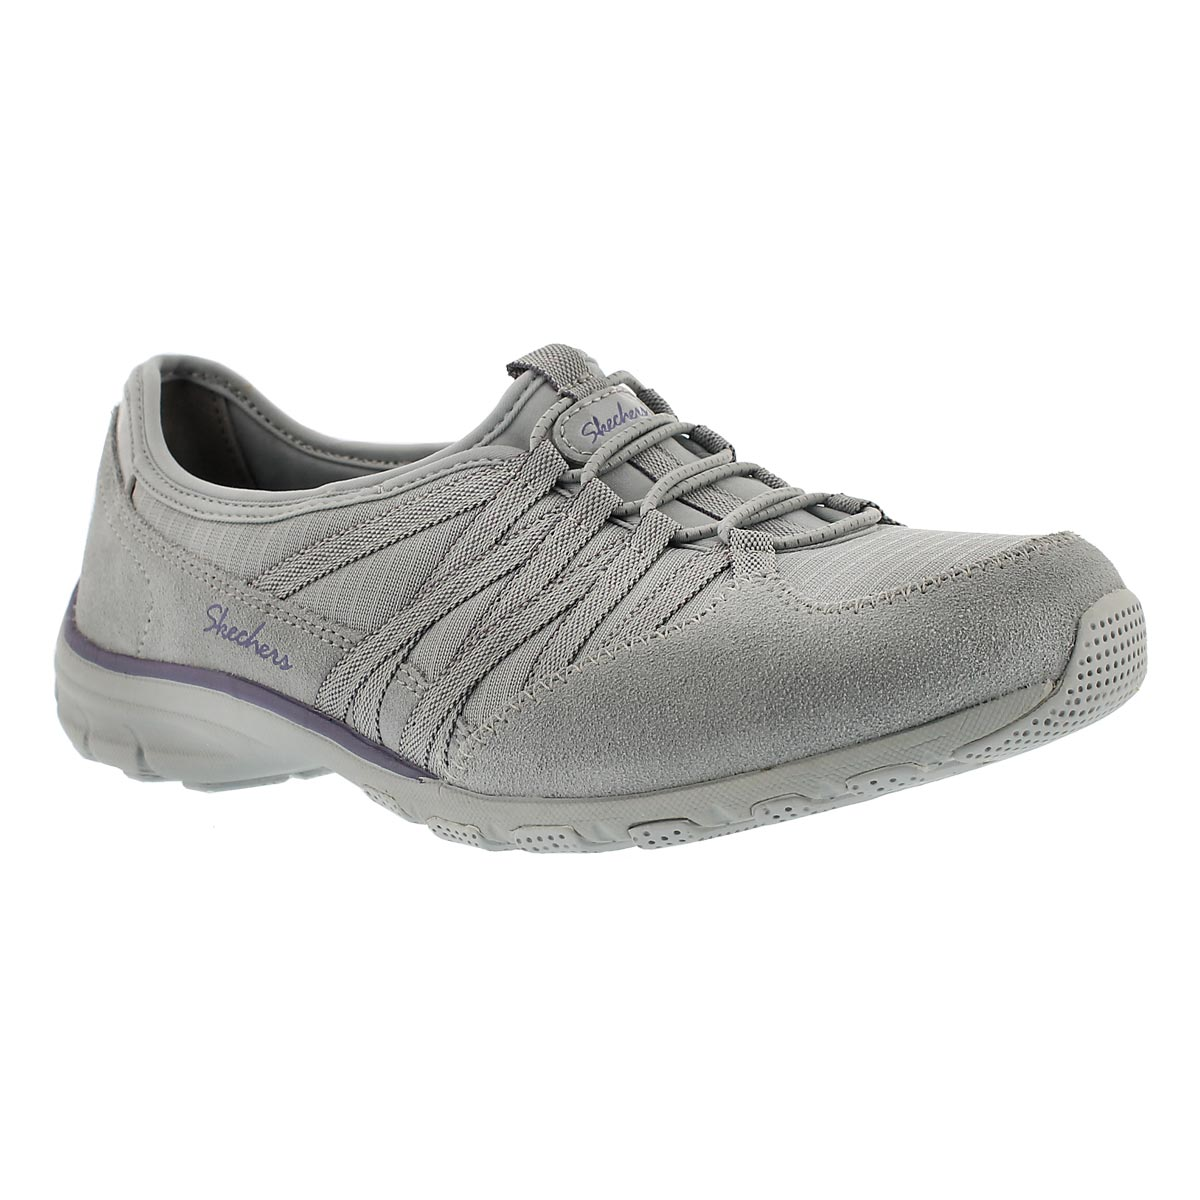 Lds Holding Aces gry/ppl slipon sneaker